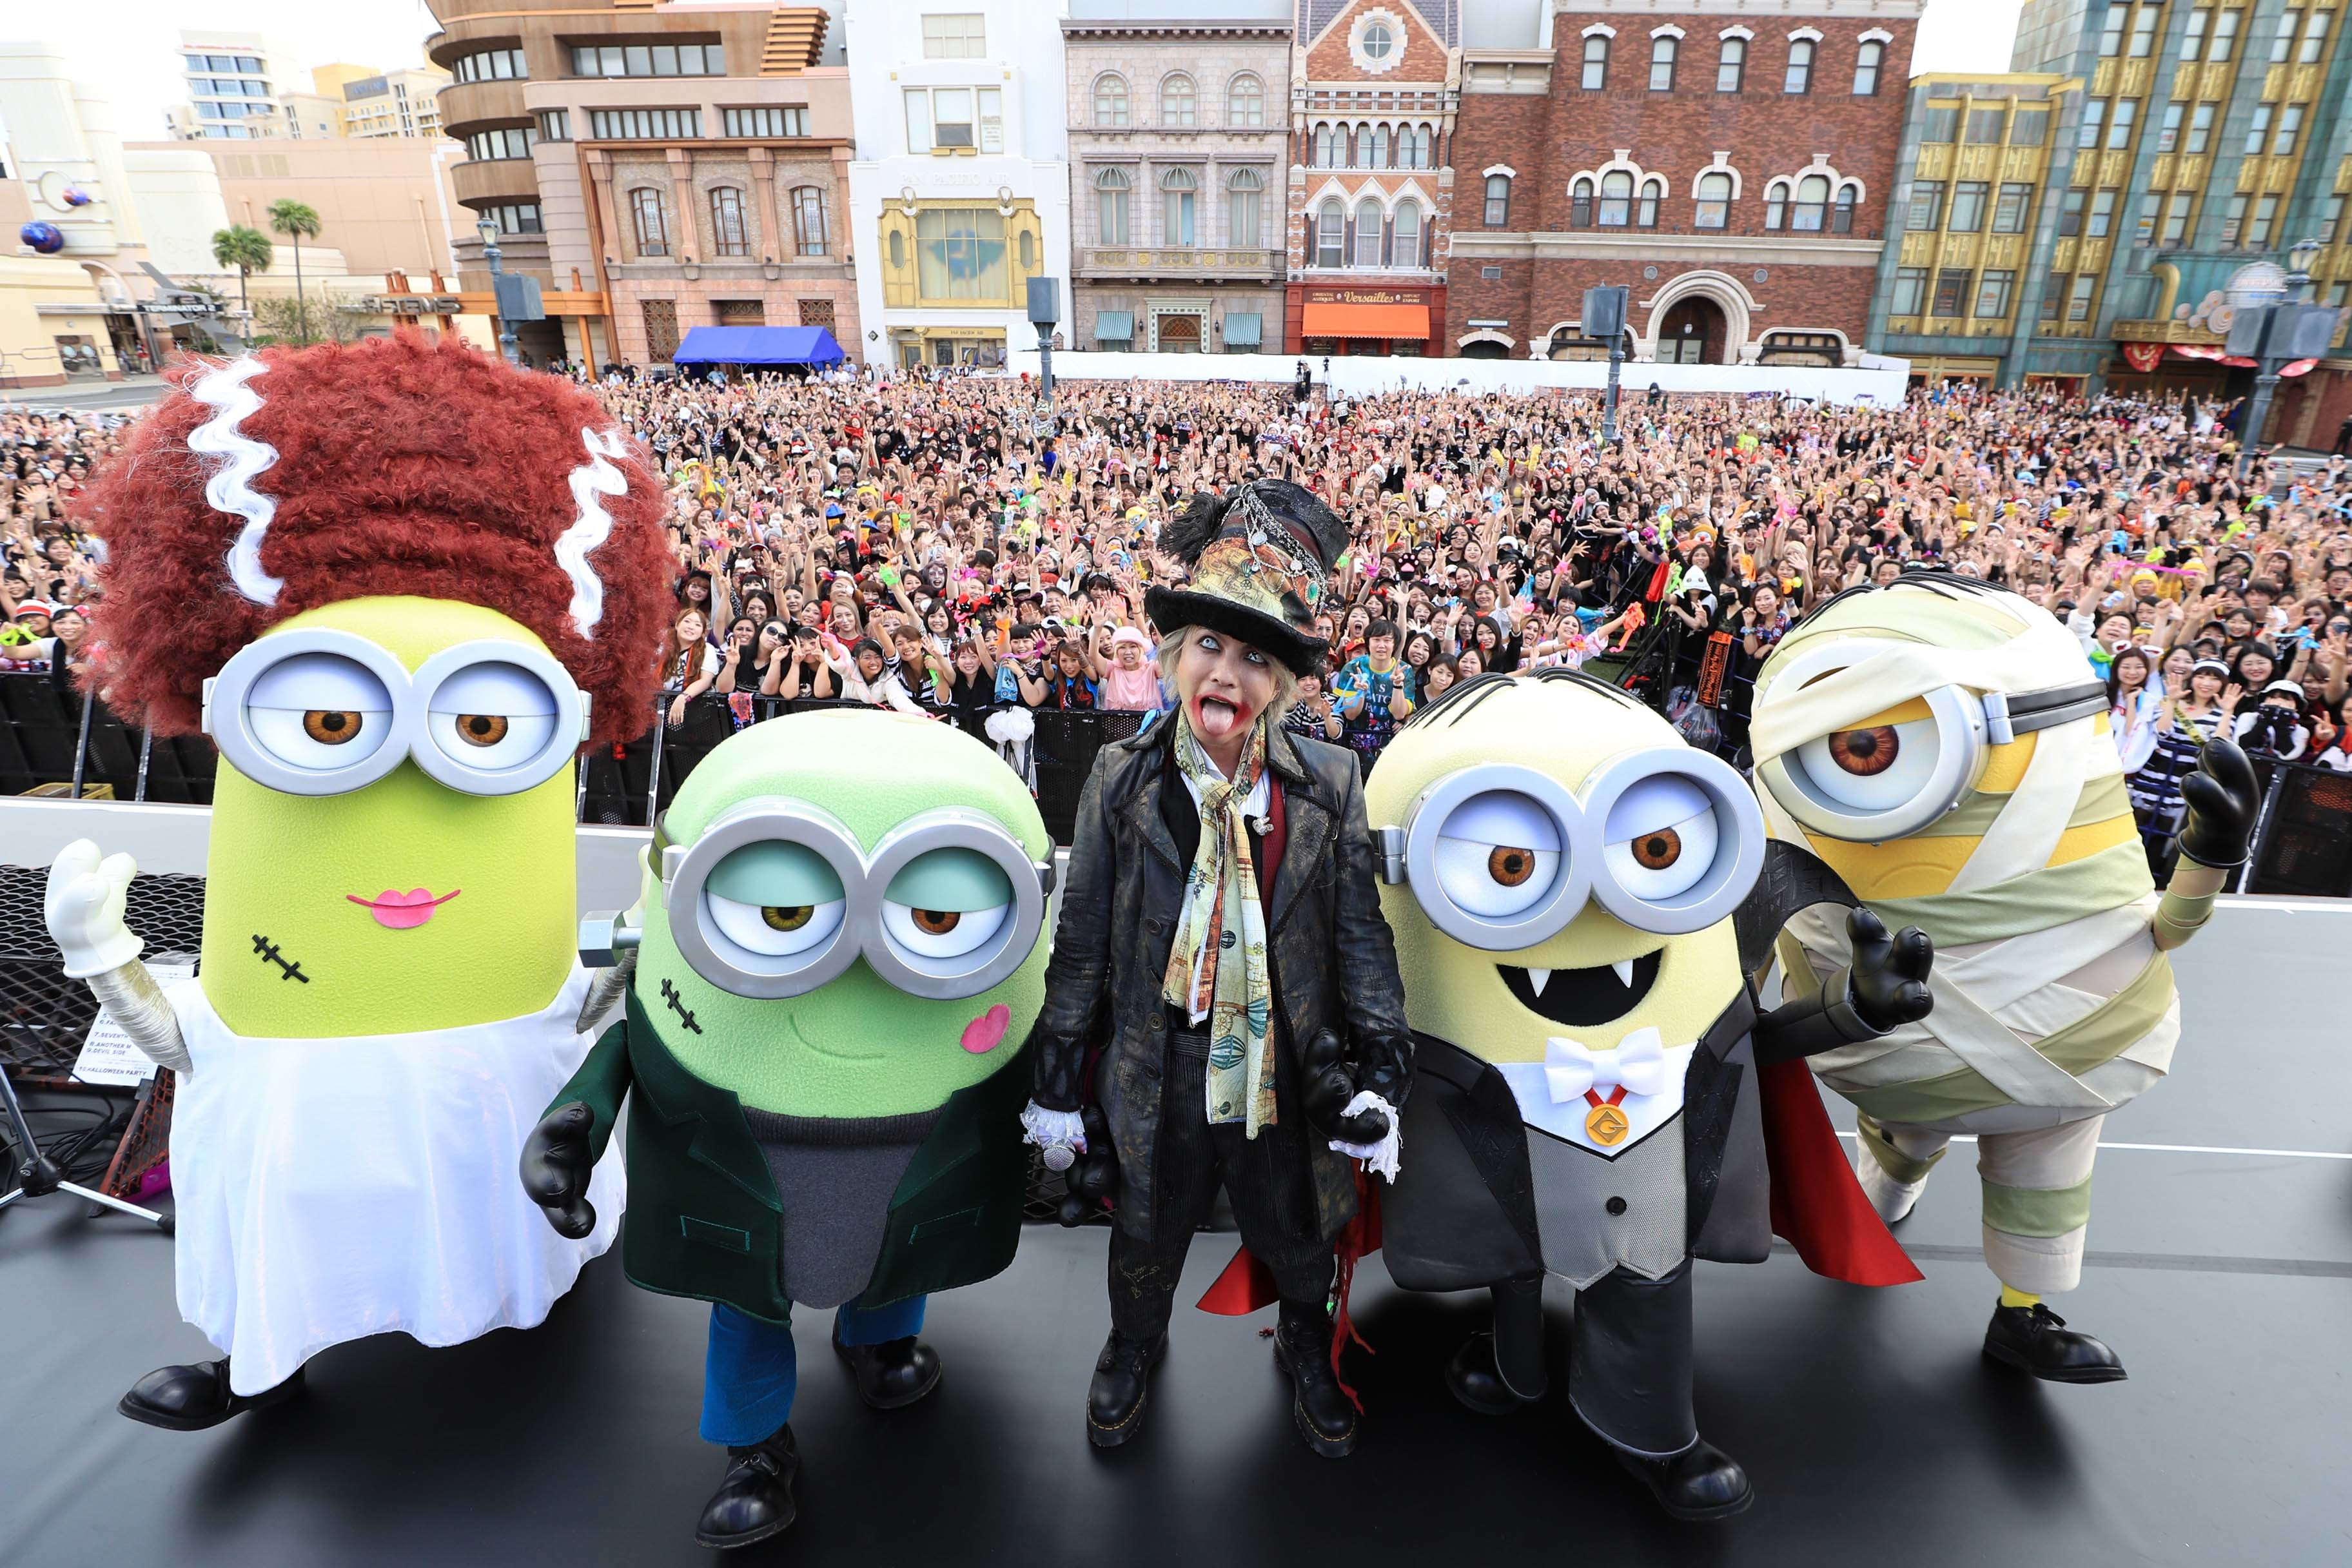 Despicable Me, Minion Made and all related marks and characters are trademarks and copyrights of Universal Studios.  Licensed by Universal Studios Licensing LLC. All Rights Reserved.